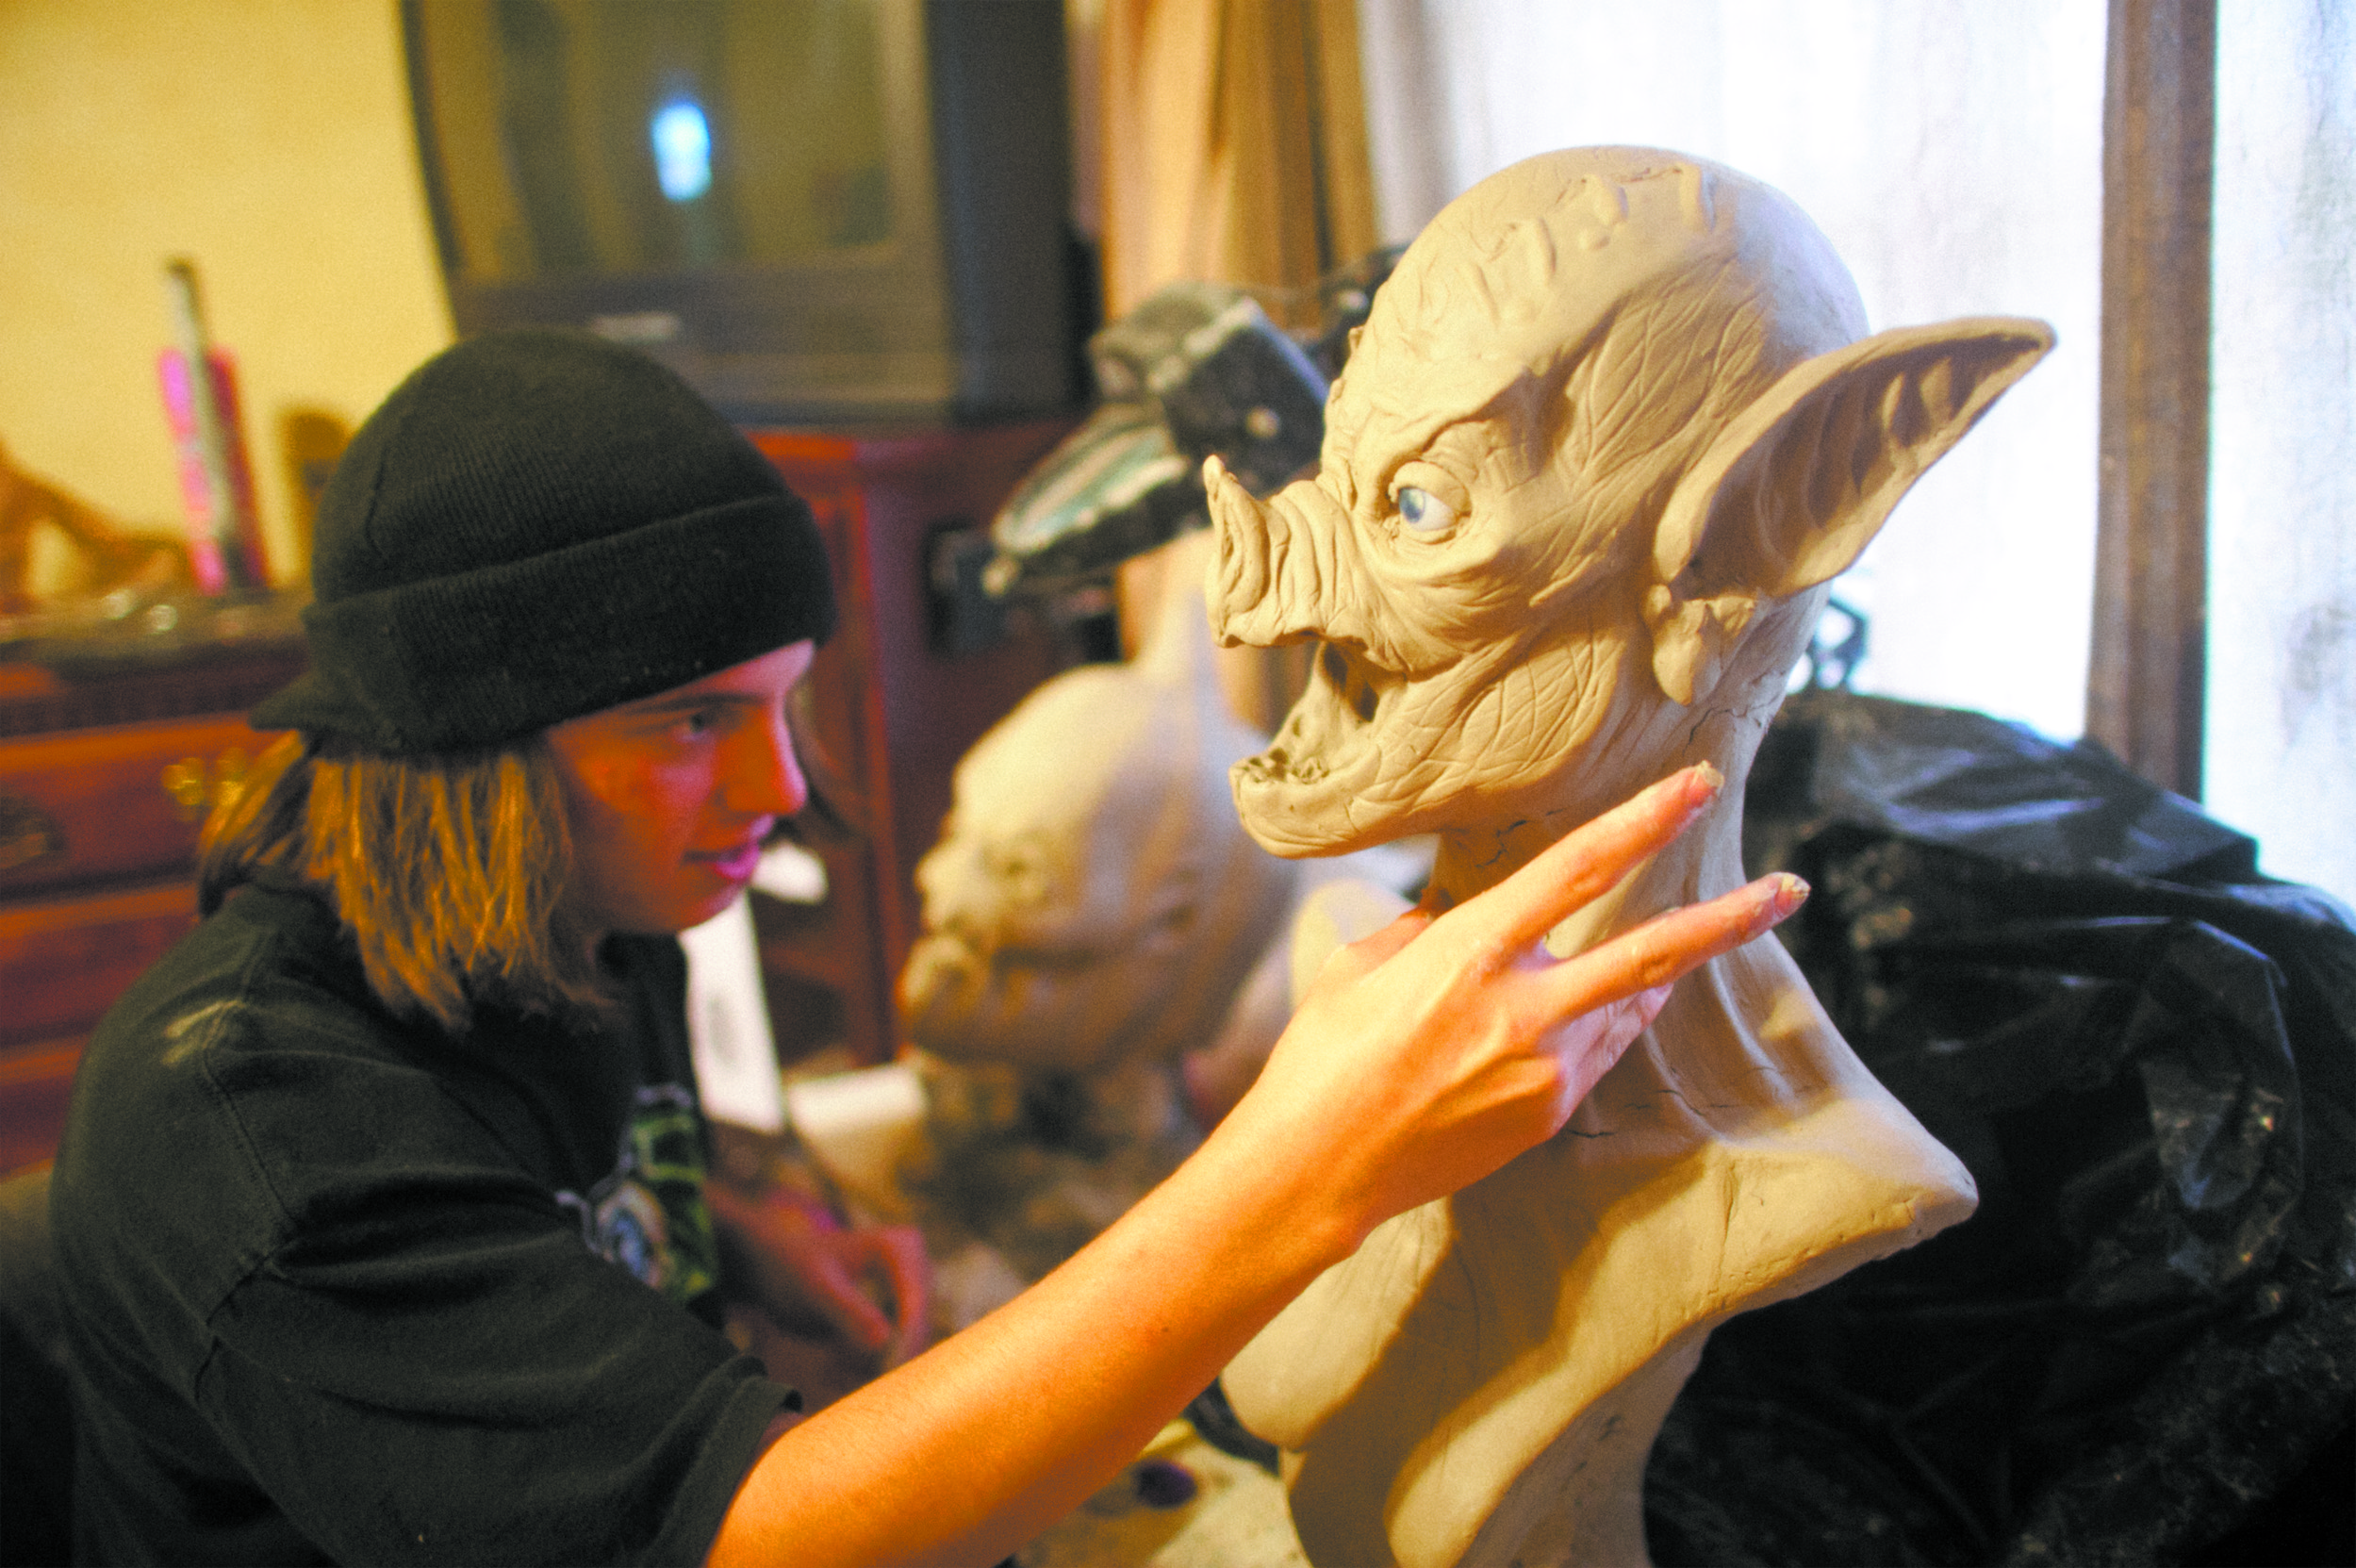 Tyler Pasquale works with latex, plaster and airbrushing out of his room in Arlington.